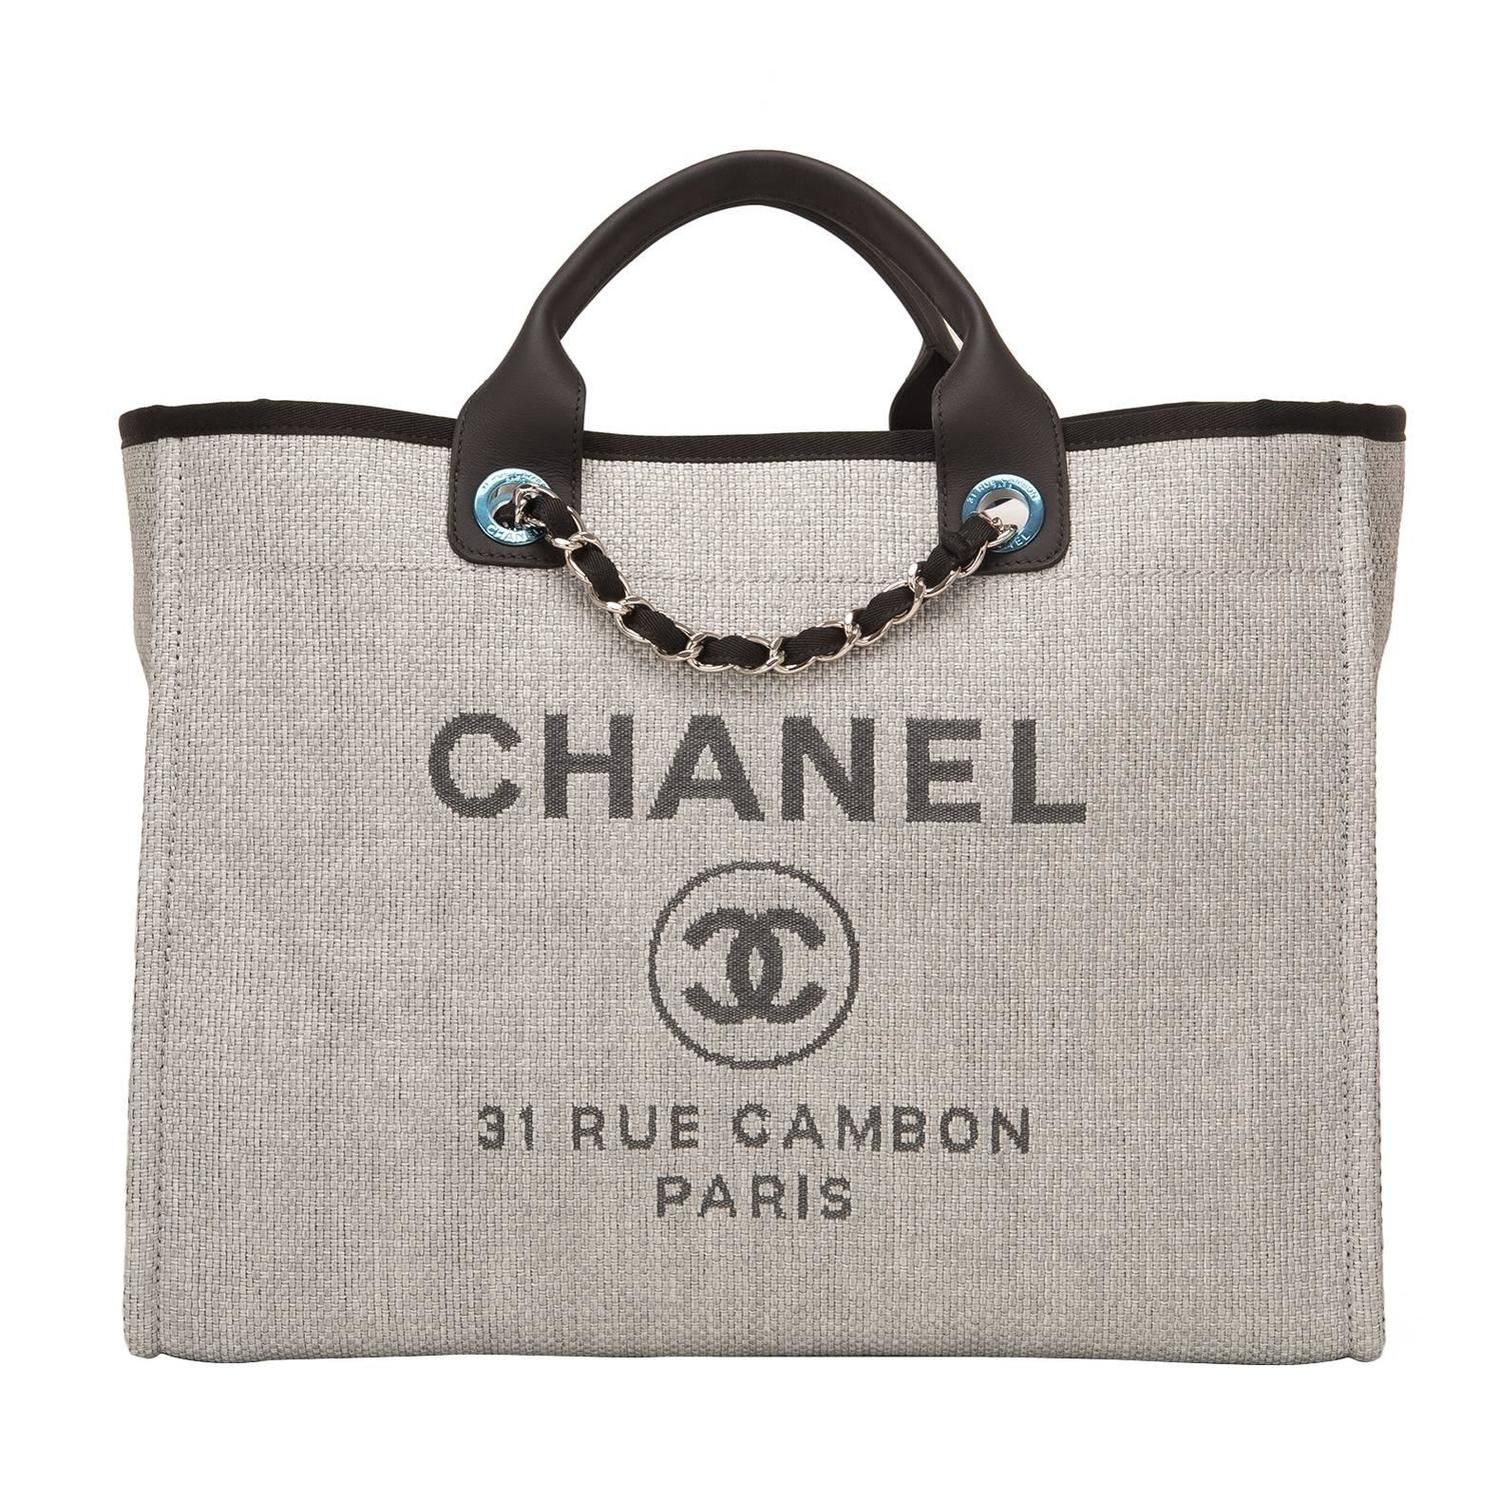 Chanel Grey Canvas Large Deauville Shopping Bag | Shopping bags ...